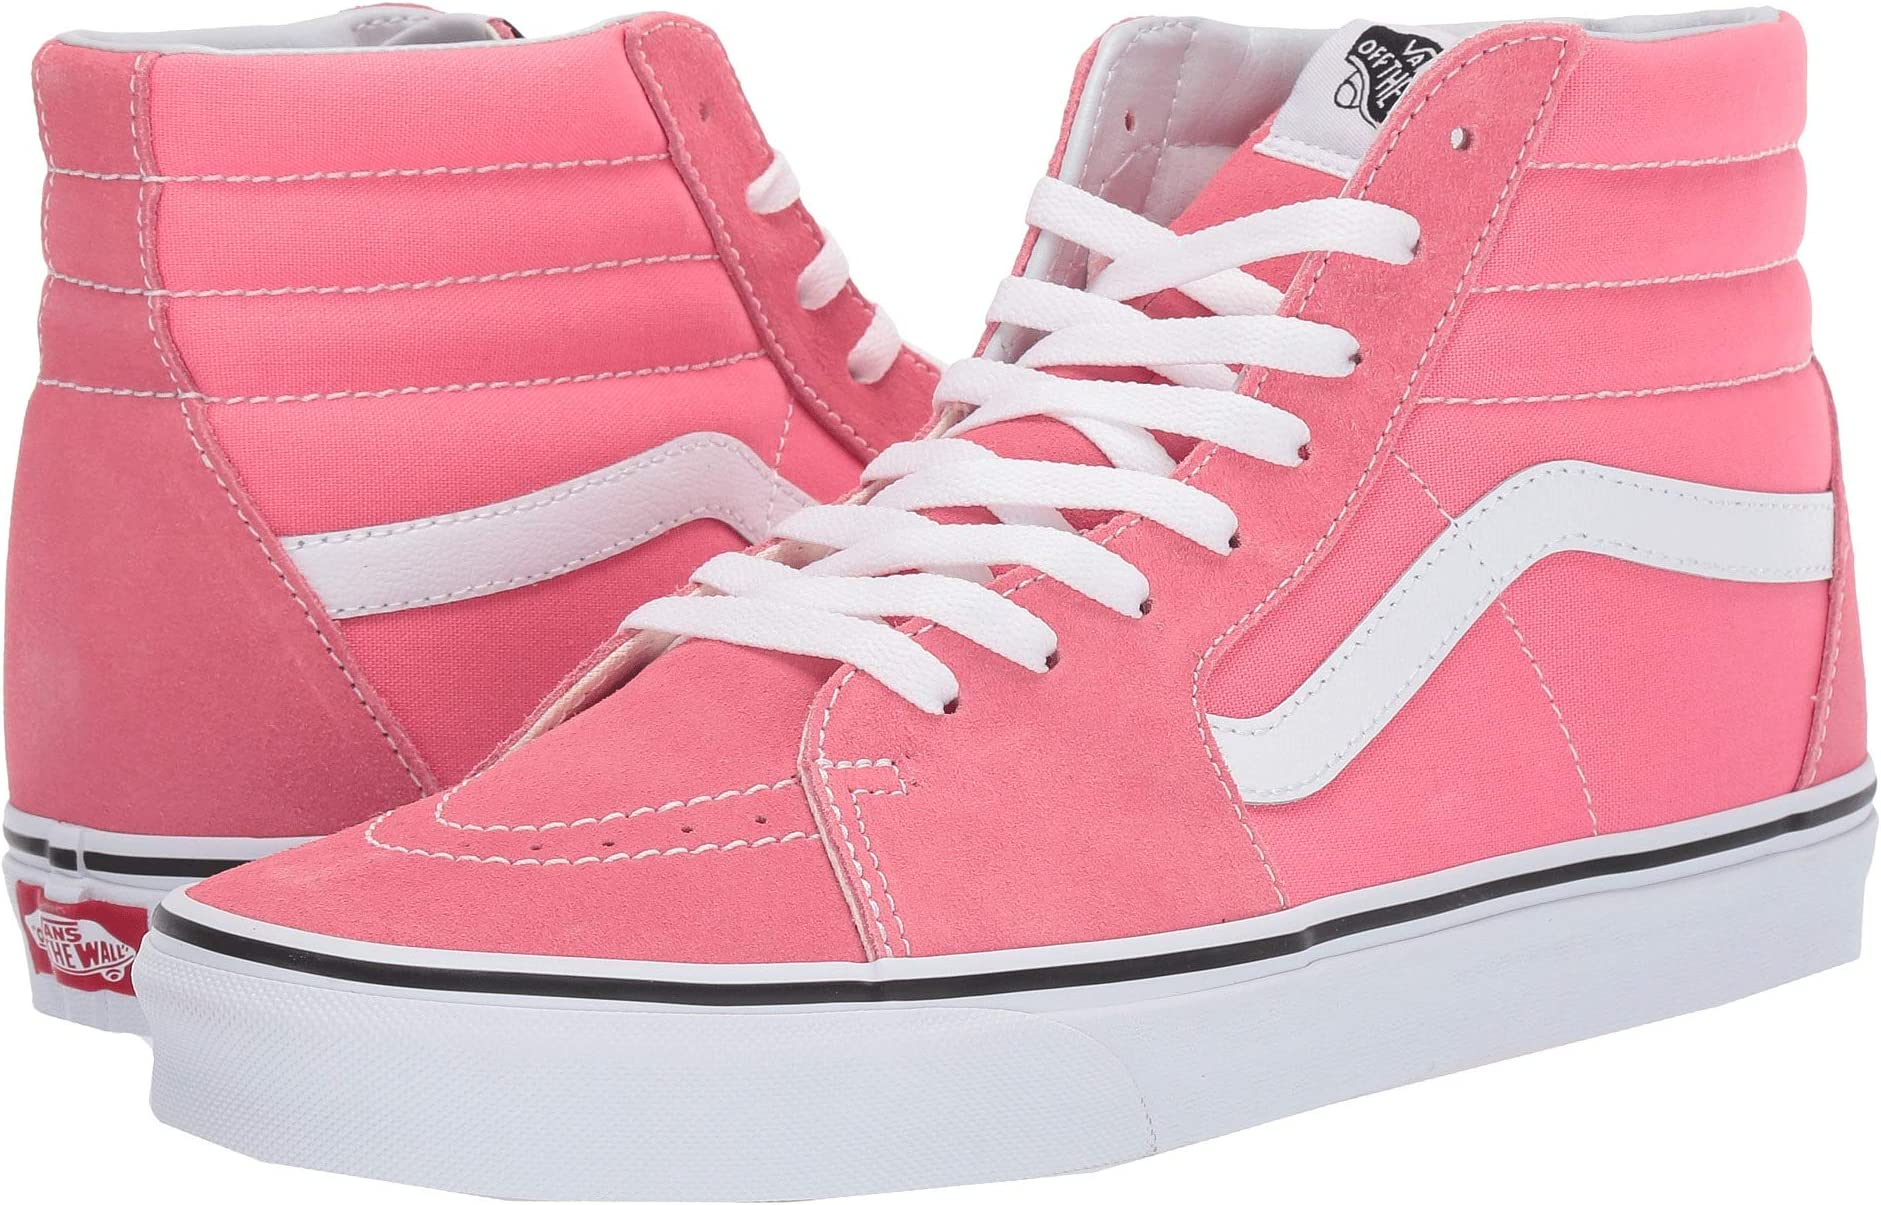 Shop Frauen Schuhe Vans Old Skool Zip Leather Weiß Spring